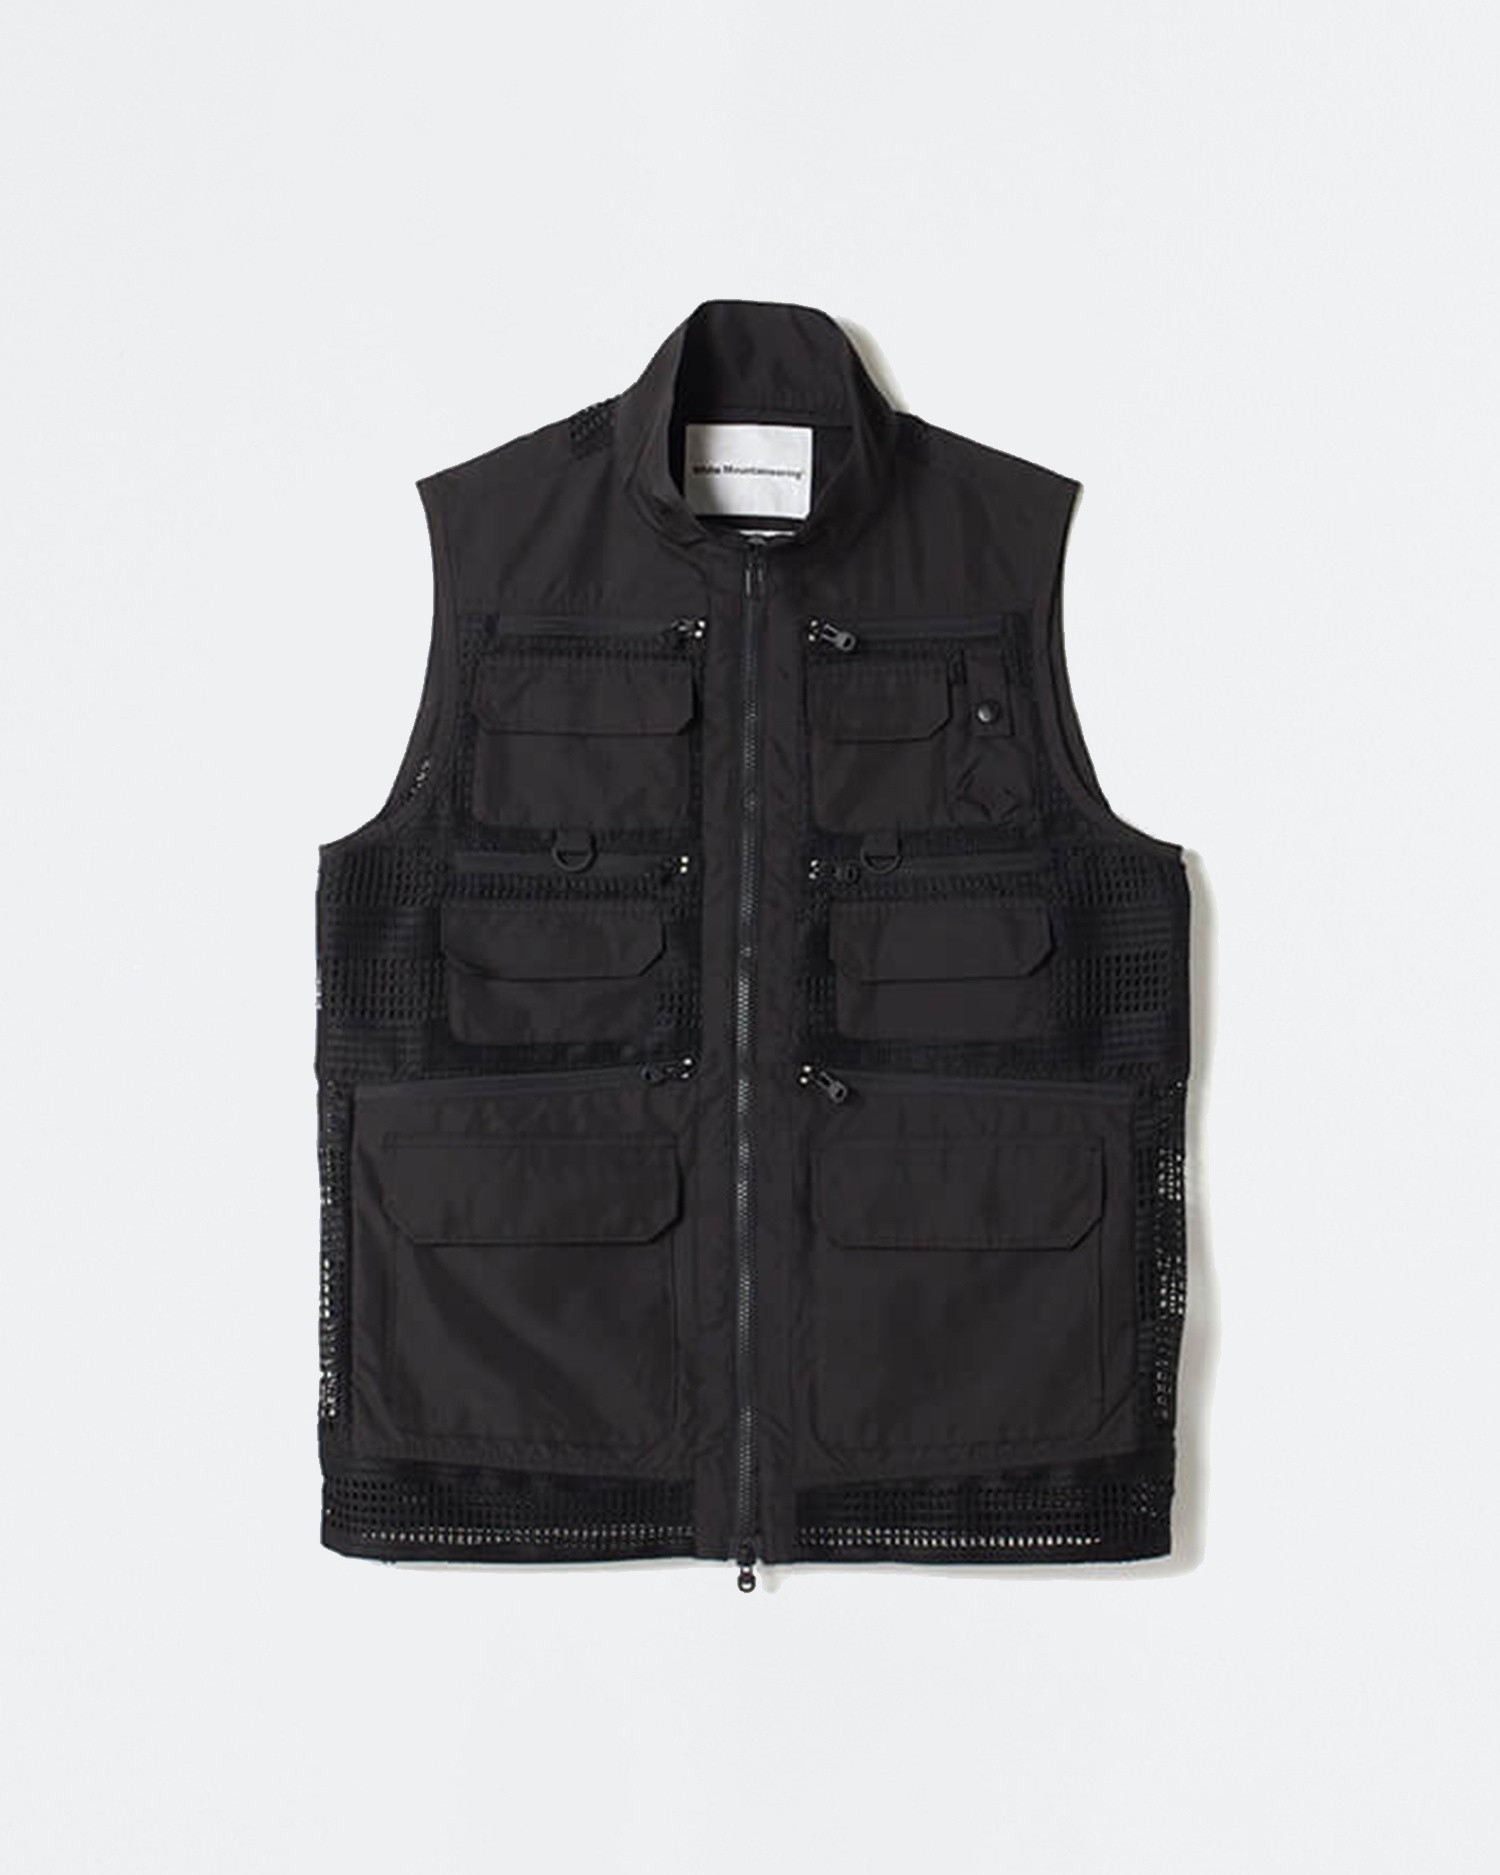 White Mountaineering Mesh Contrasted Luggage Vest Black